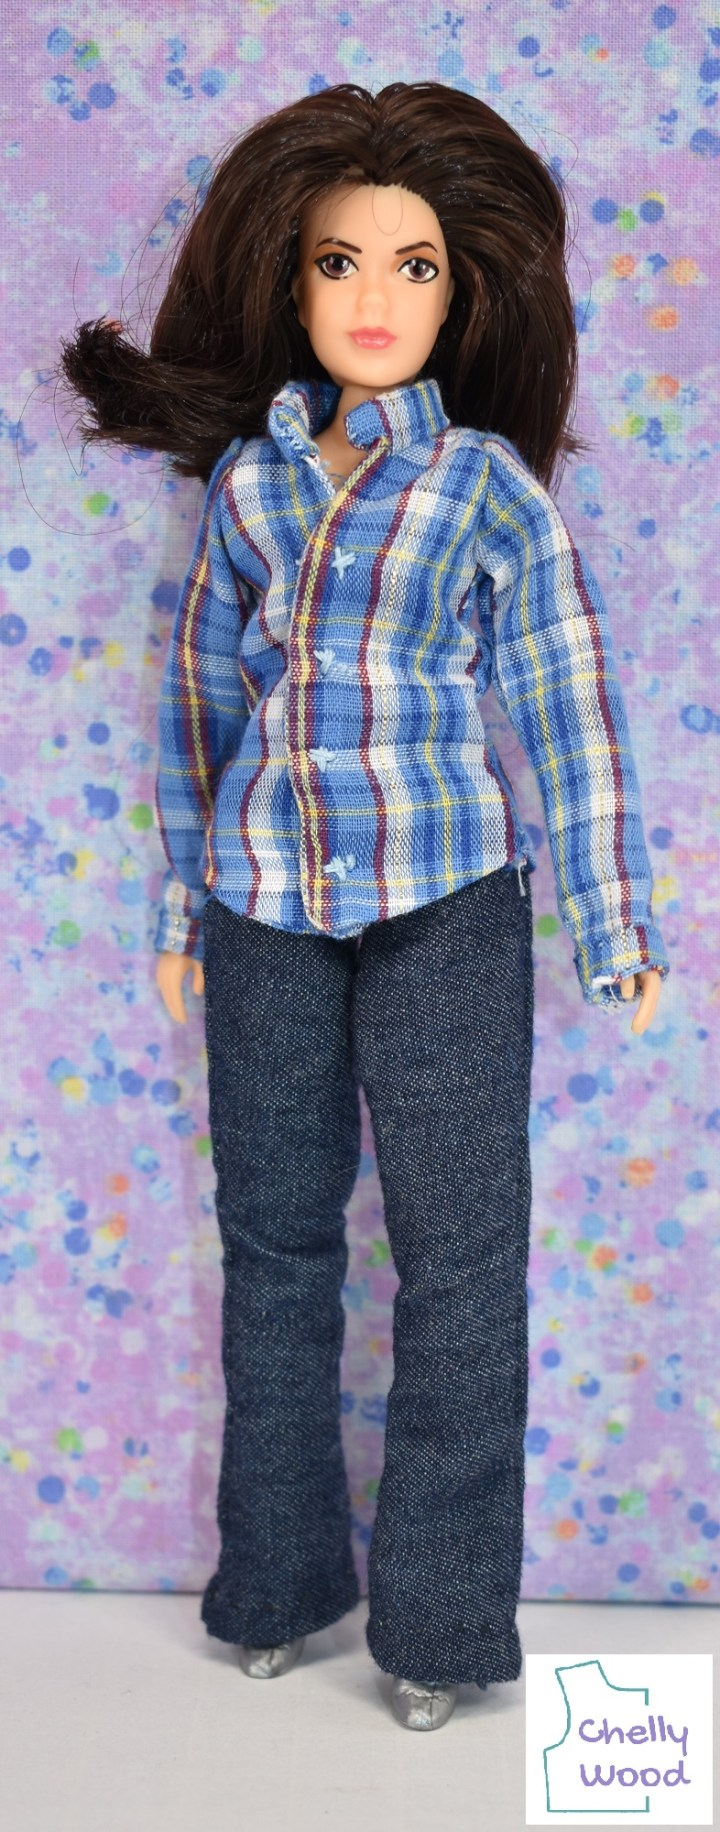 This photo shows the Mego action figure that looks like Piper from the show Charmed (CBS) wearing handmade western style doll clothes. Her shirt is a blue plaid shirt with white, yellow, and red stripes blending throughout the blue of the shirt. This long sleeved plaid shirt has a collar and cuffs. Beneath her shirt, she wears a pair of rustic looking dark blue denim elastic waist jeans that have a boot cut leg. Her silver high heel shoes keep her pants from brushing the white floor beneath her just barely. Behind her is a light purple backdrop with tiny spots in blue, yellow, green, and light orange. Her full head of hair arches above her brow and curls slightly above her right shoulder.